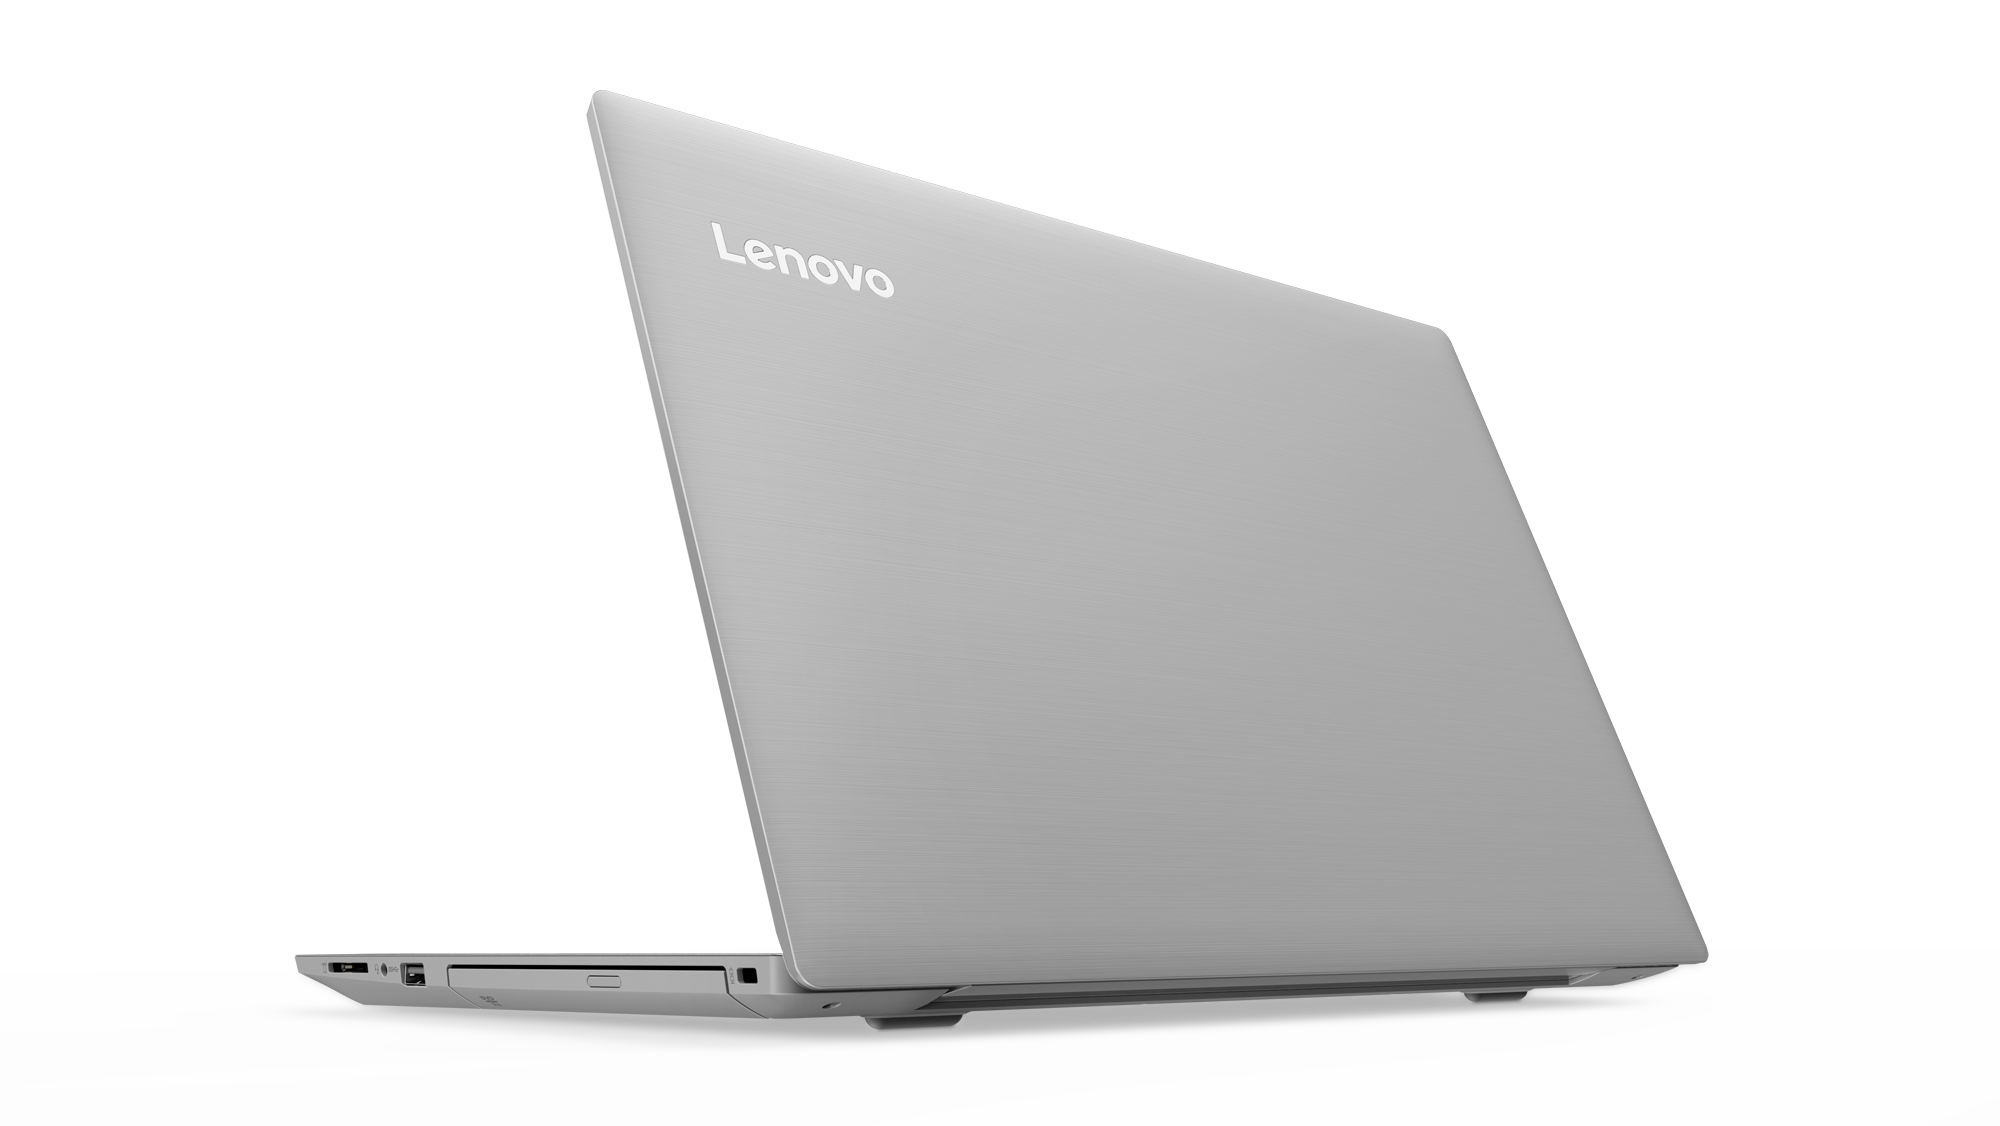 uninstall Lenovo Experience Improvement